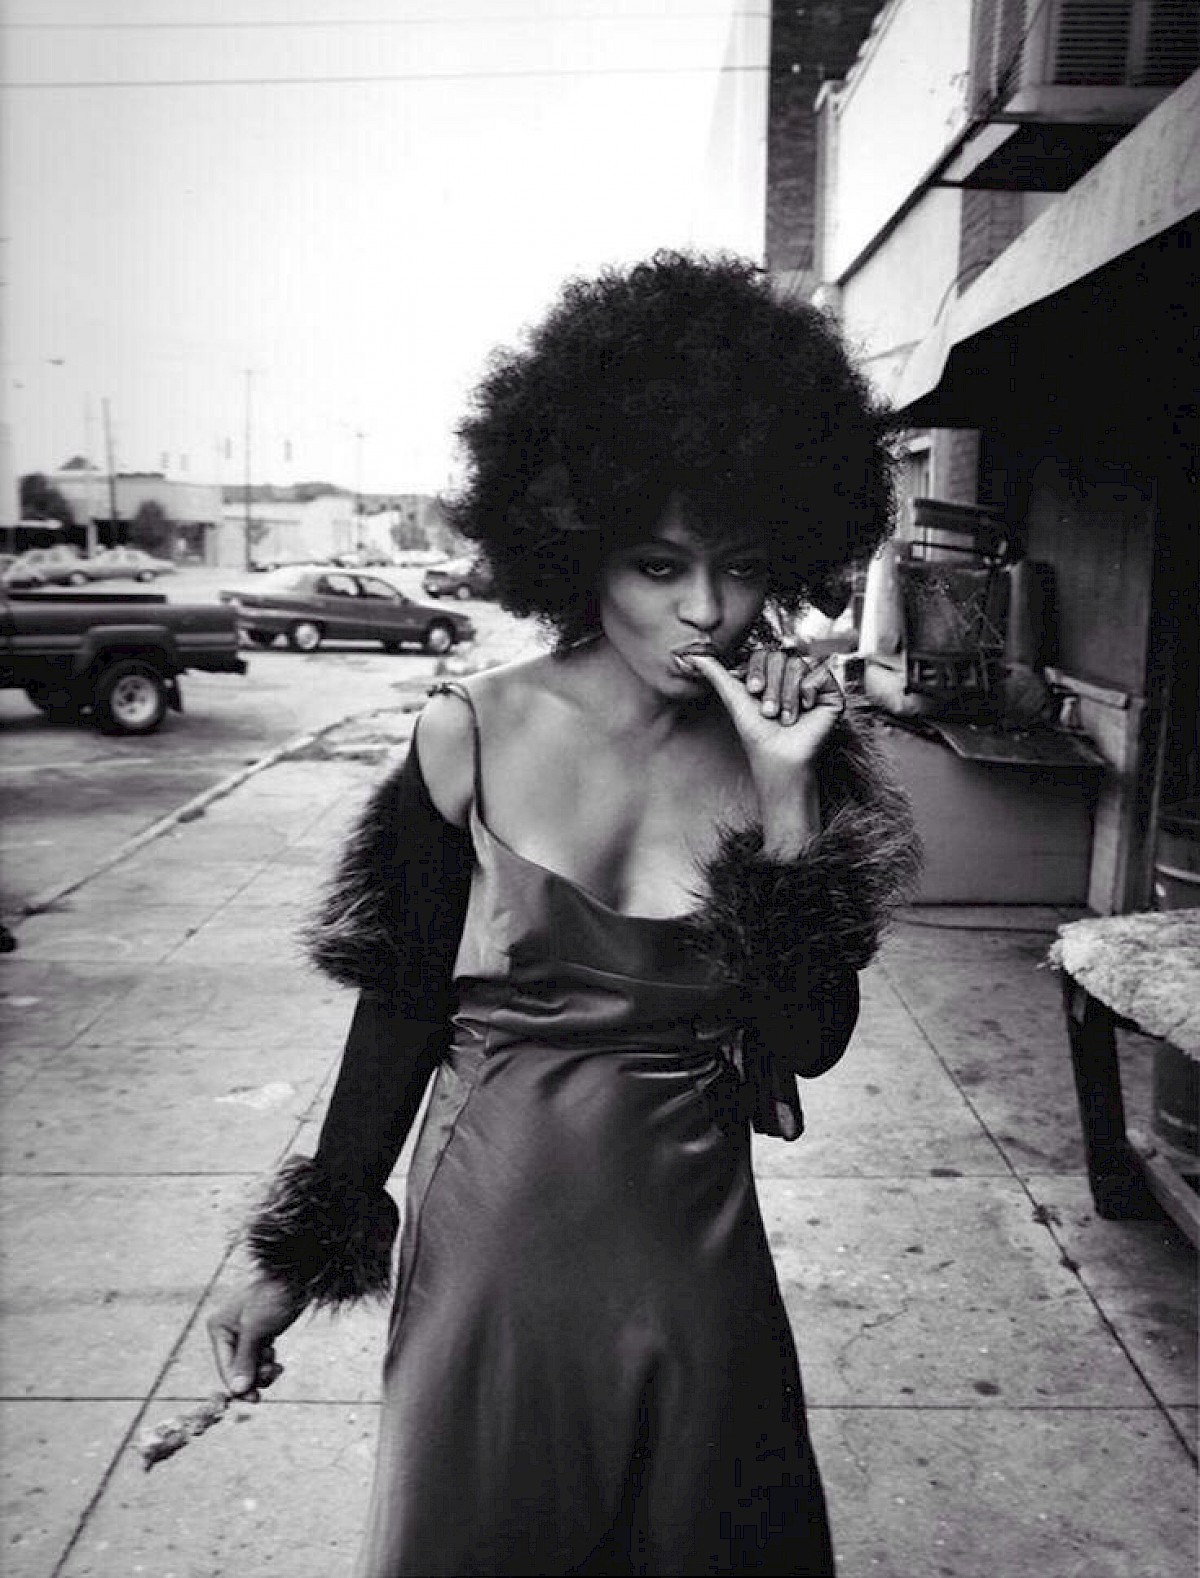 Diana Ross style icon b&w fashion photography timeless Vogue inspo textures body timeless moss bruce weber lindbergh newton avedon demarchelier meisel doisneau Alaia Chanel YSL vintage